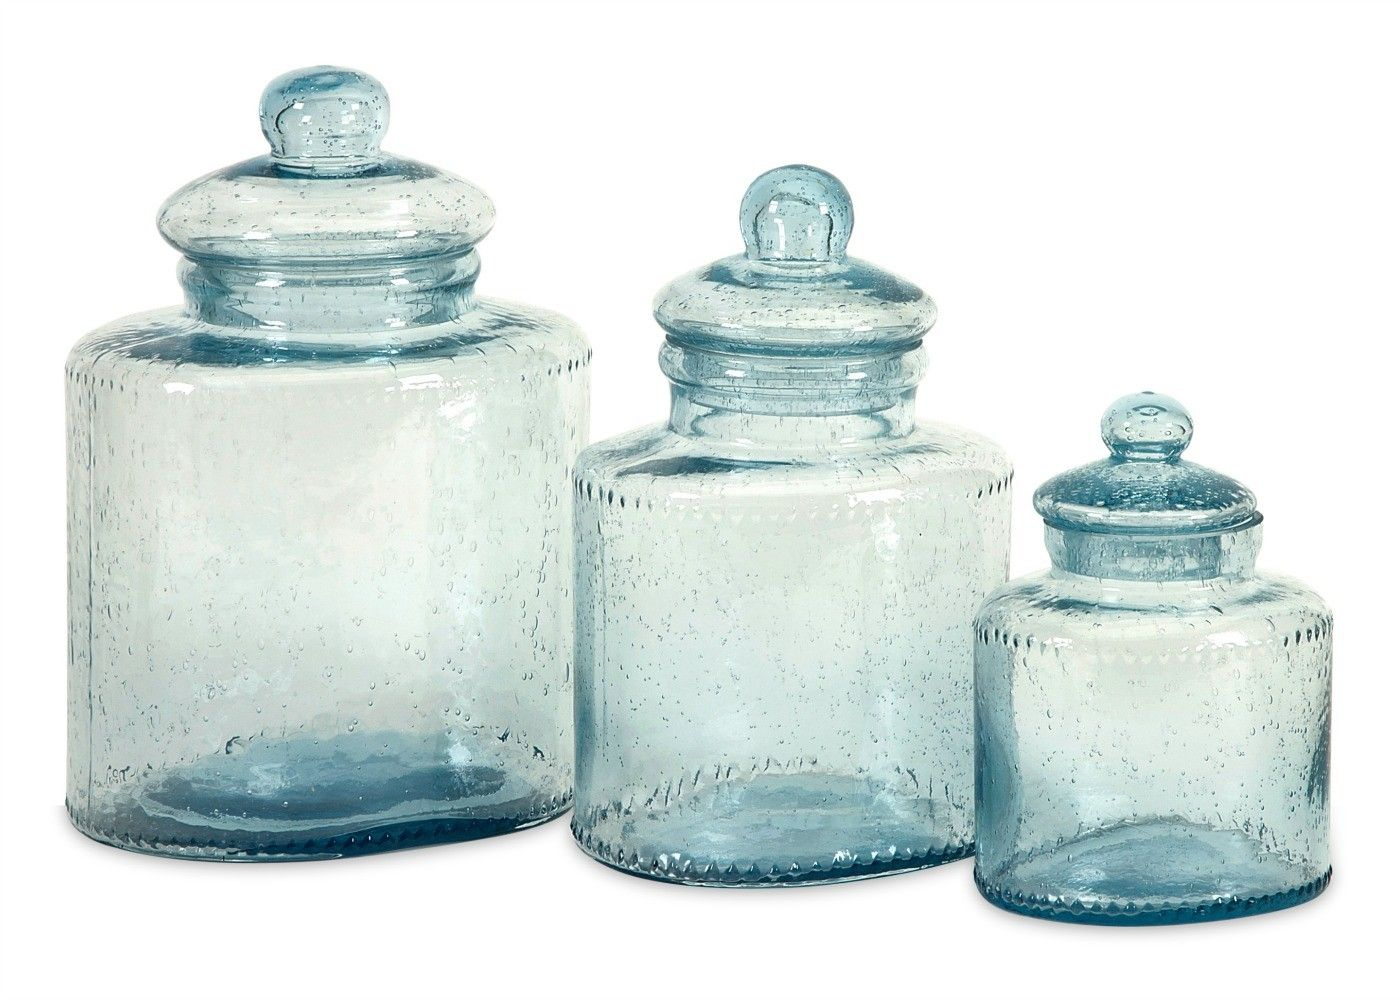 Cyprus Glass Canister - Set of 3 - What\'s New? | Turquoise Sea Home ...